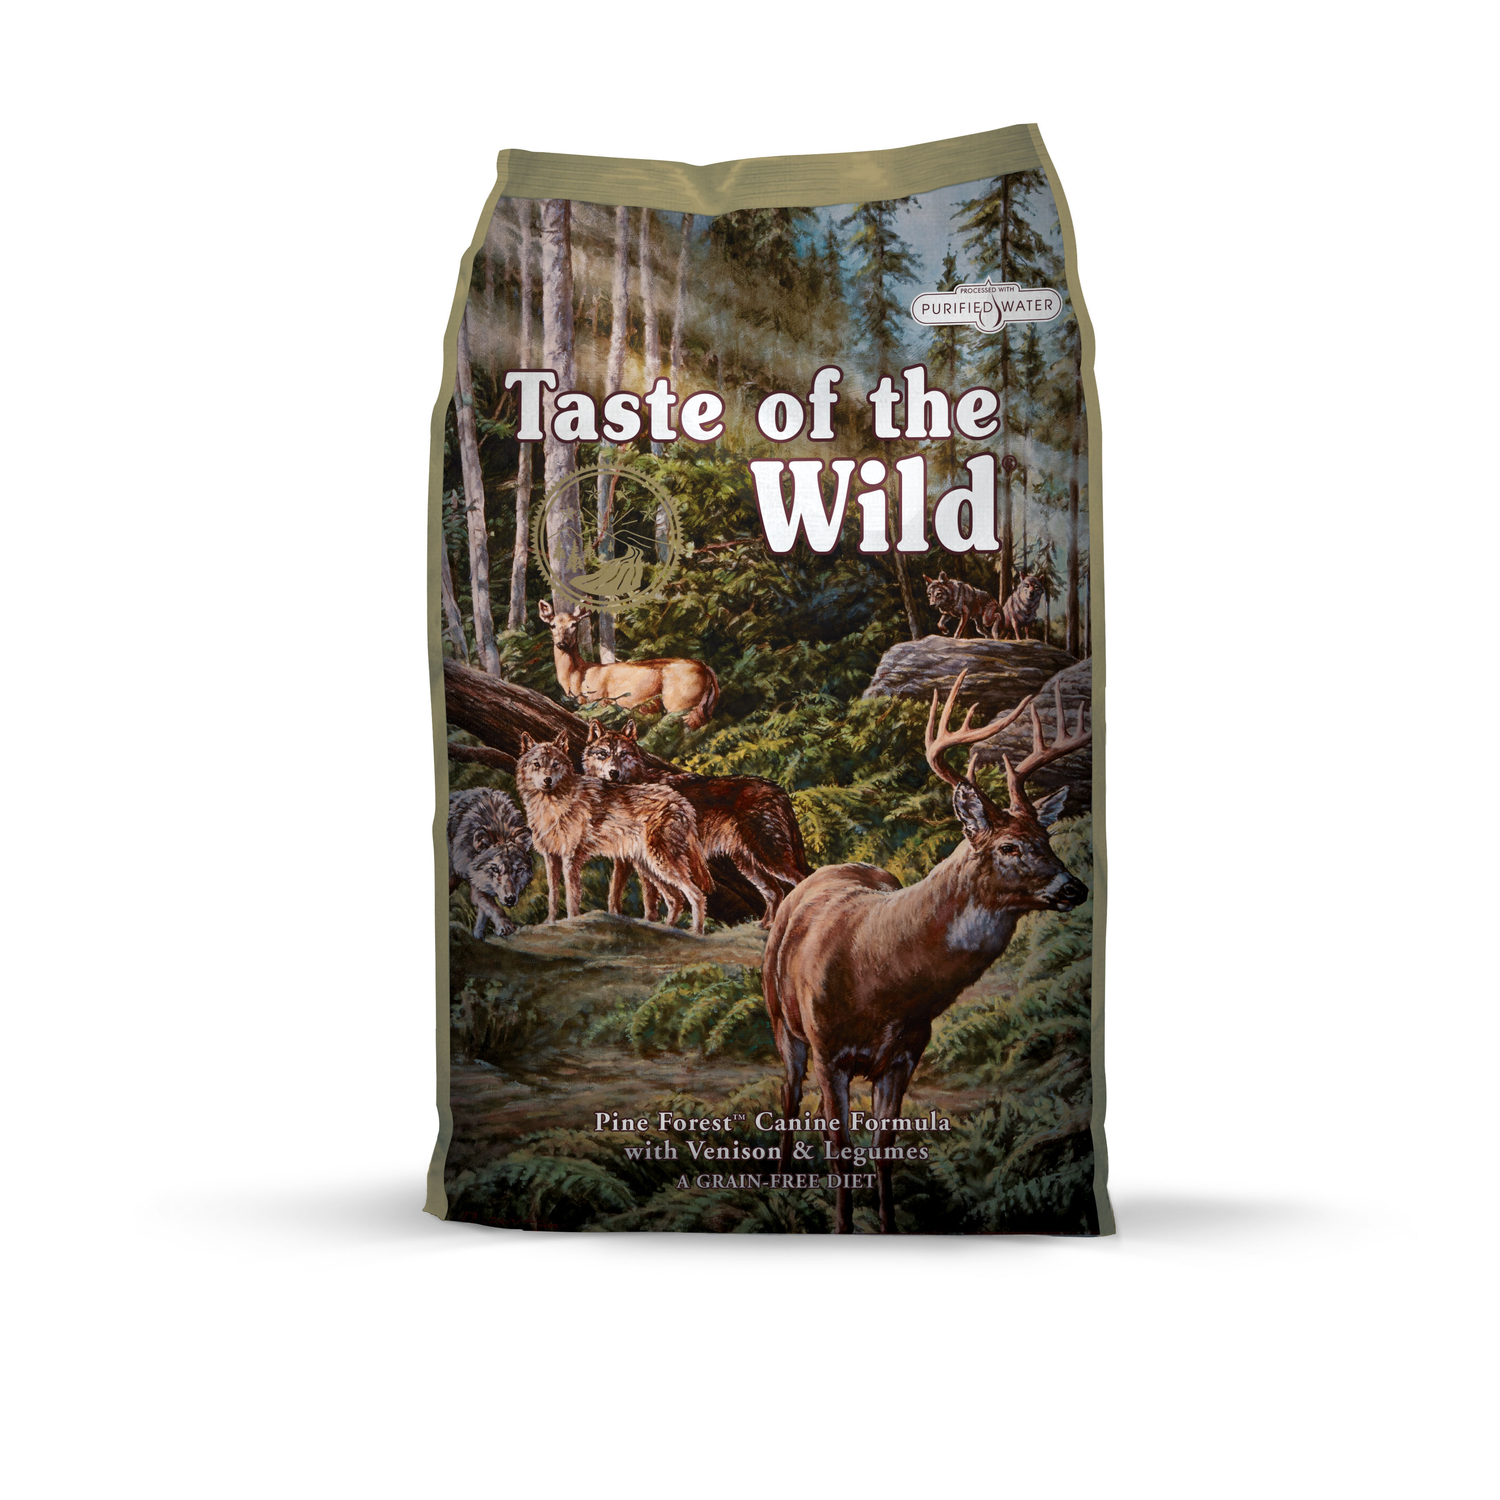 Taste of the Wild  Pine Forest  Venison/Legumes  Dog  Food  Grain Free 28